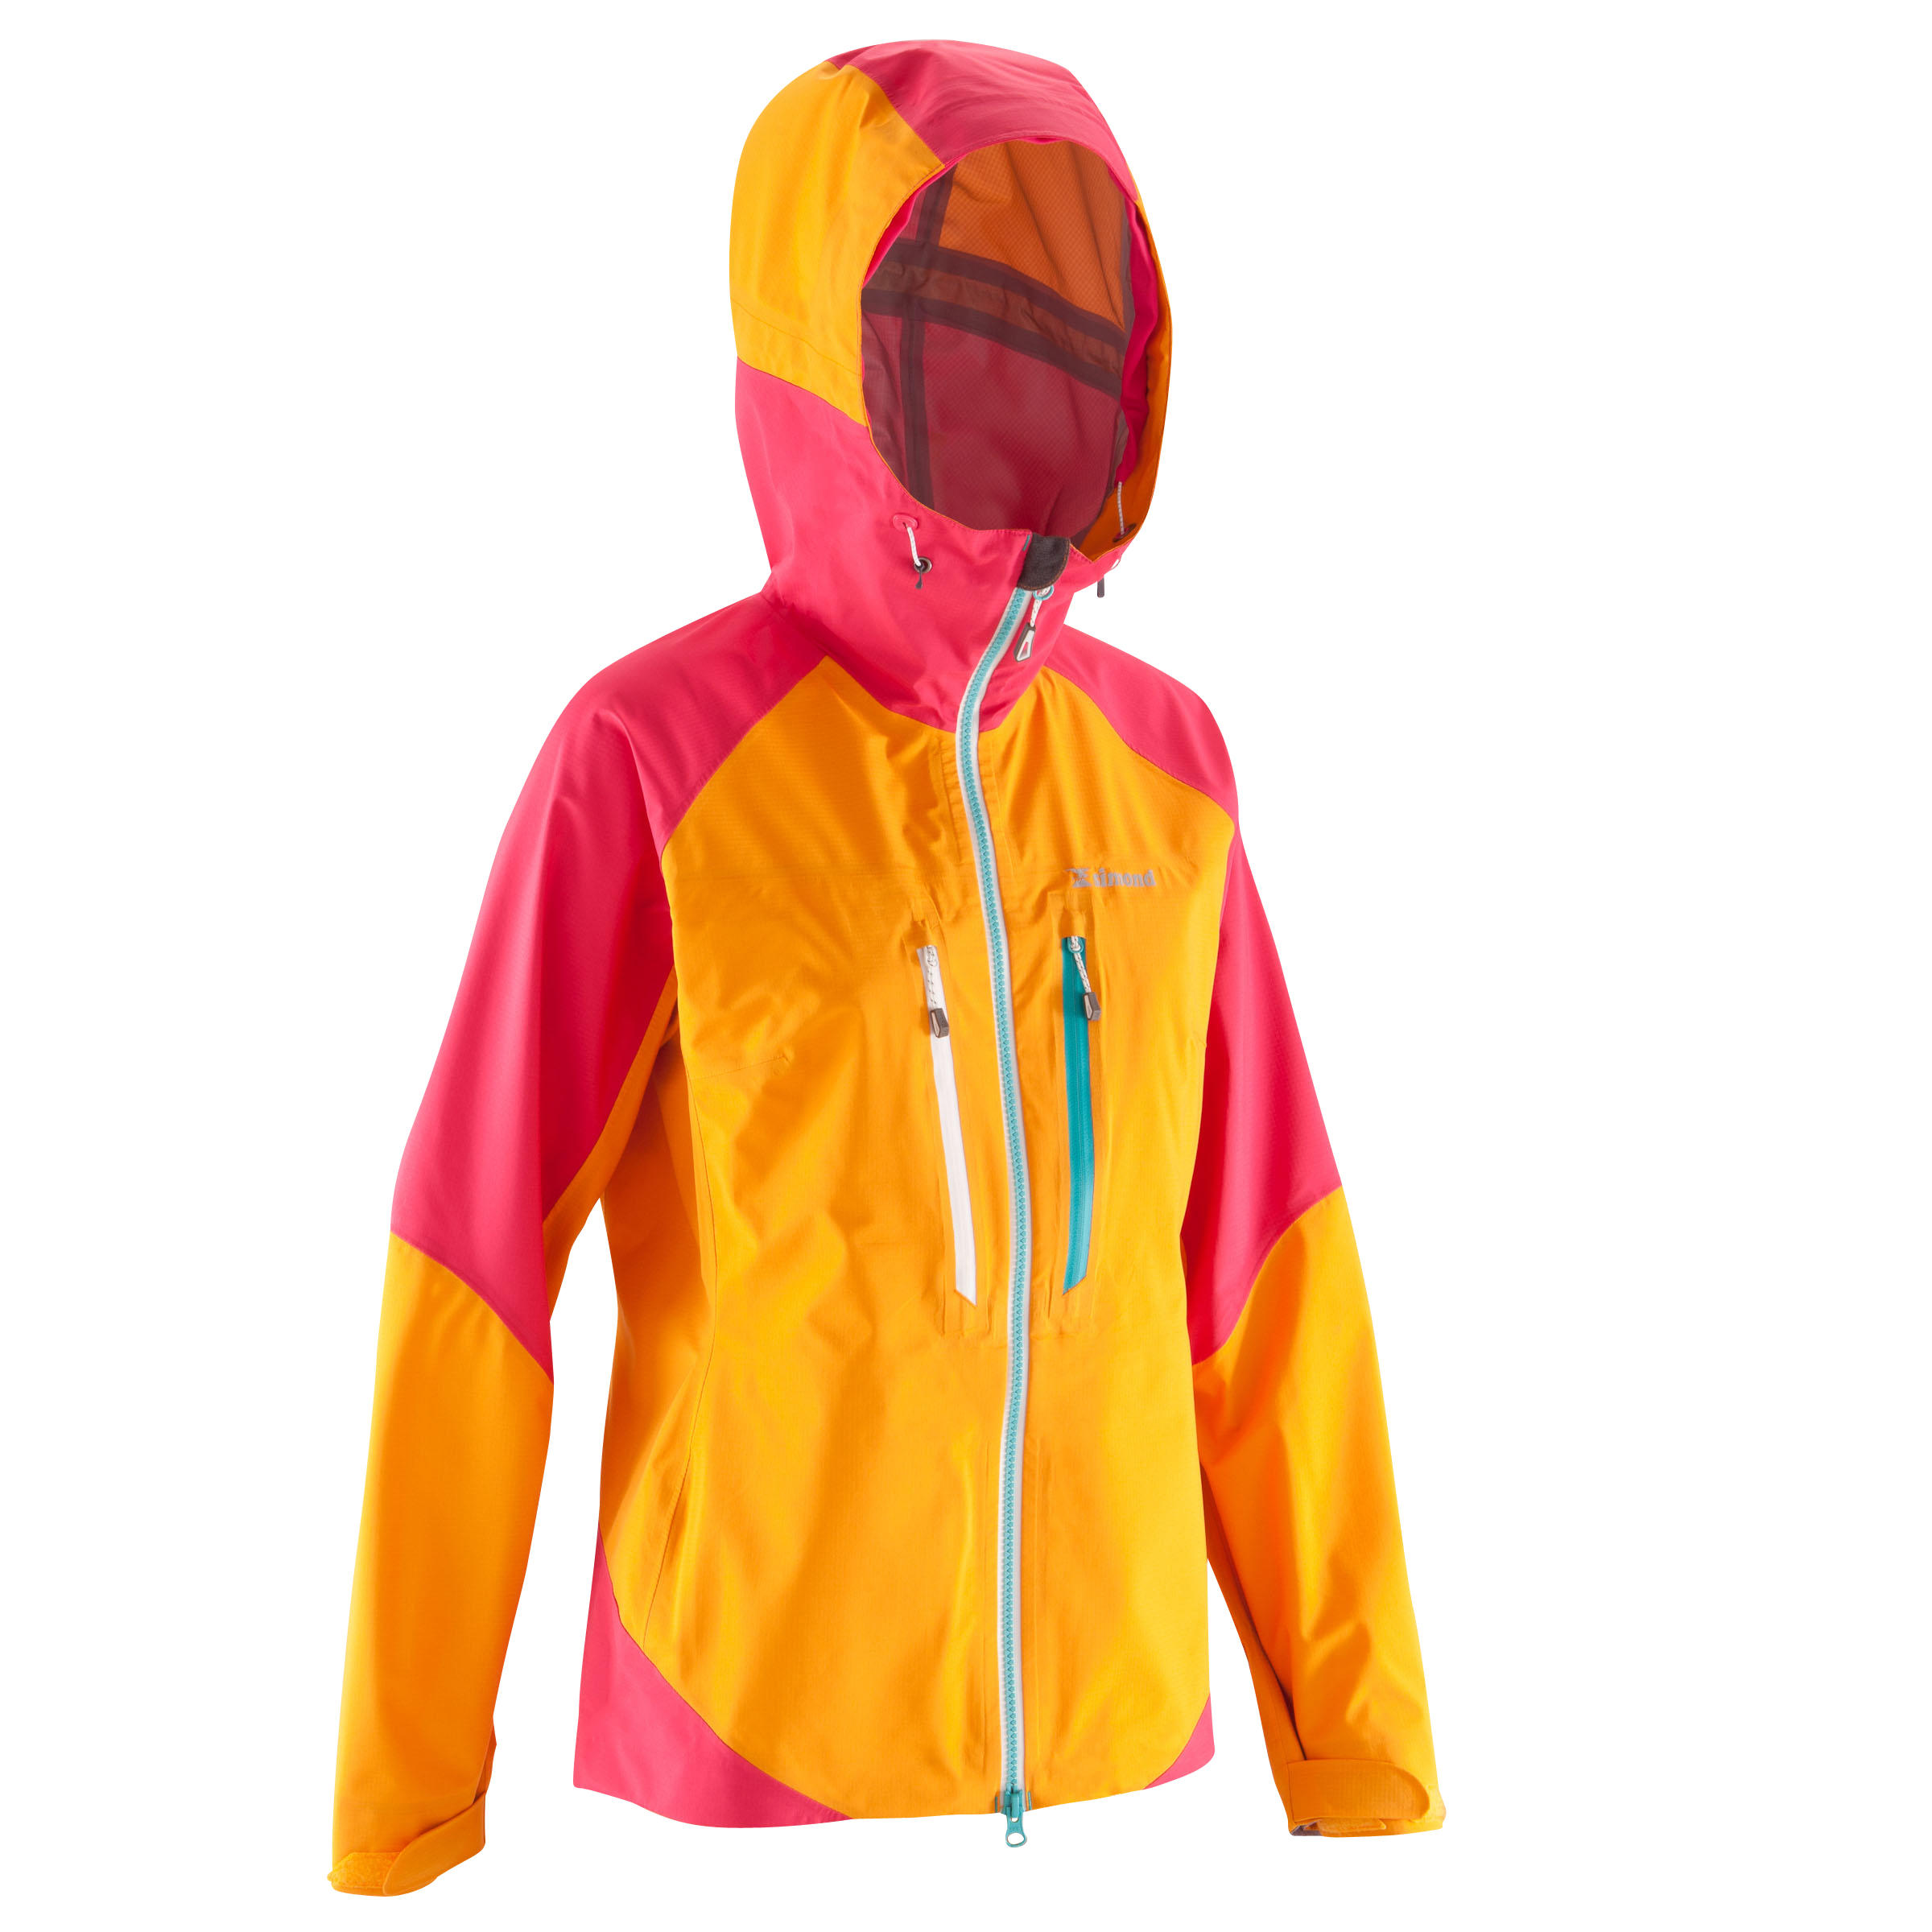 Women's Mountaineering Light Jacket - Mango & Pink